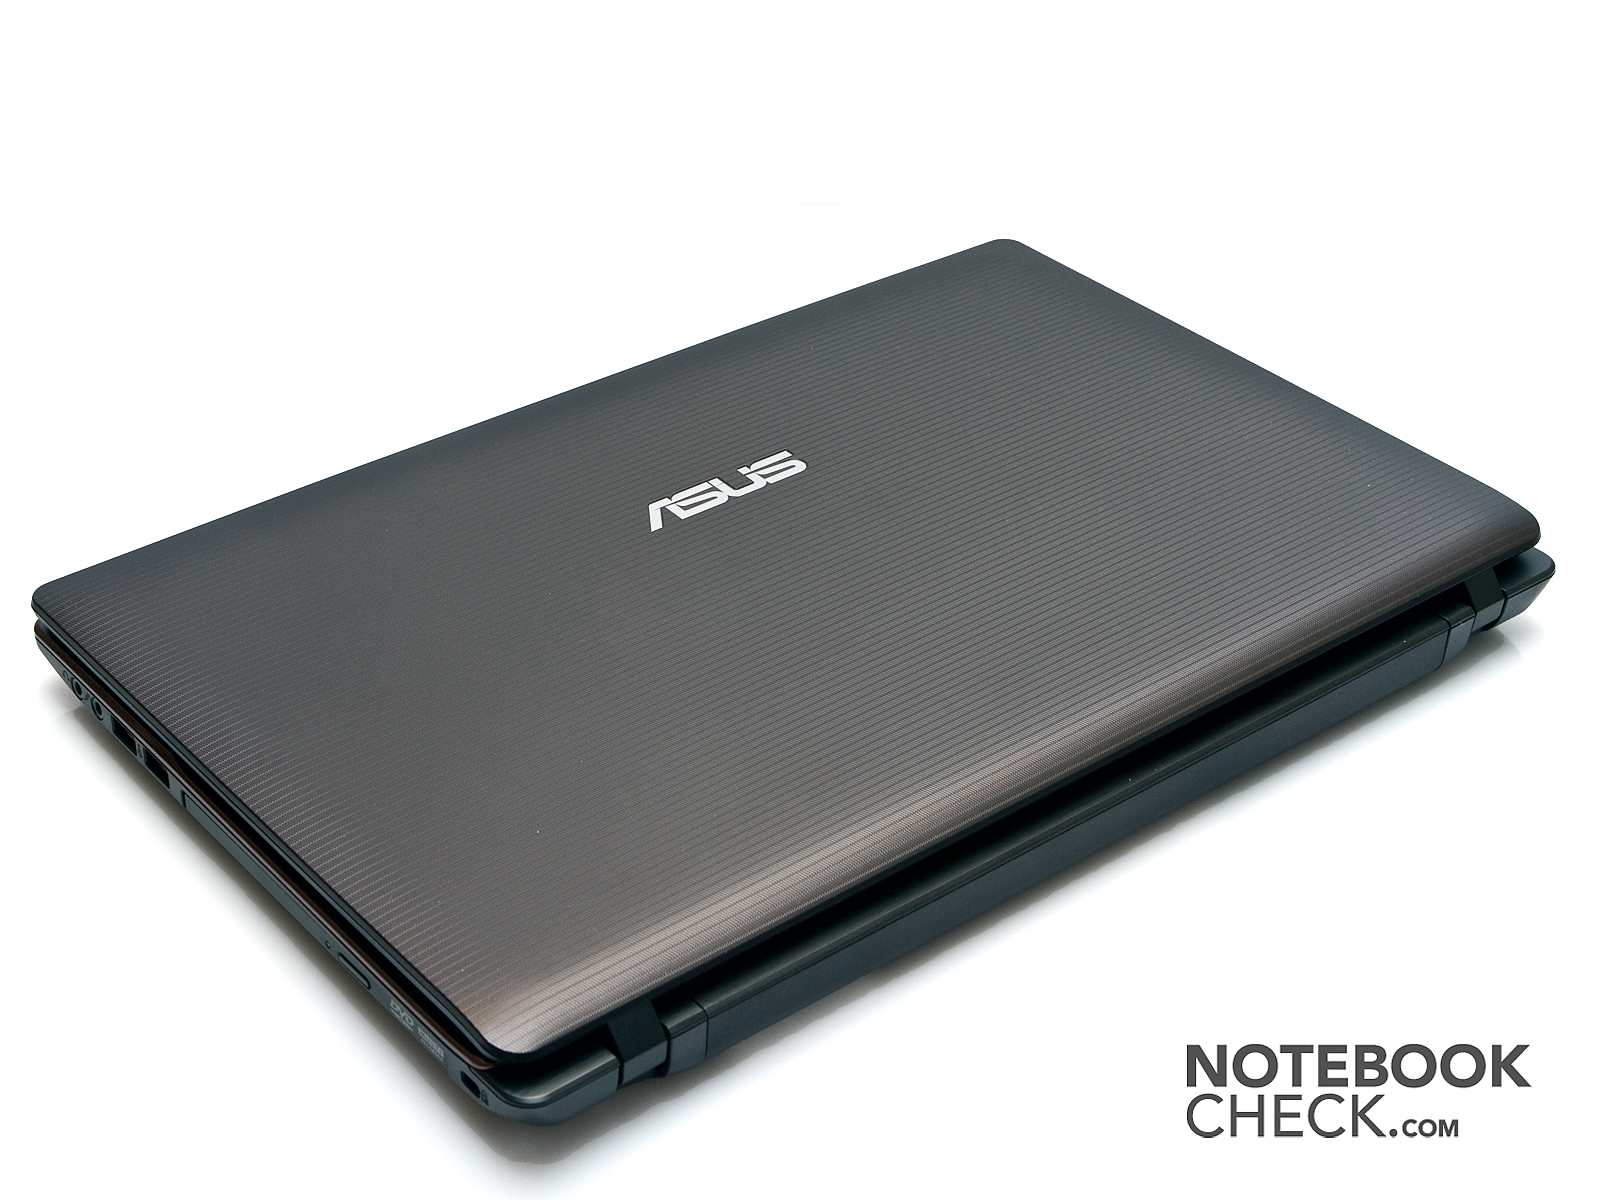 ASUS X53E NOTEBOOK DRIVER